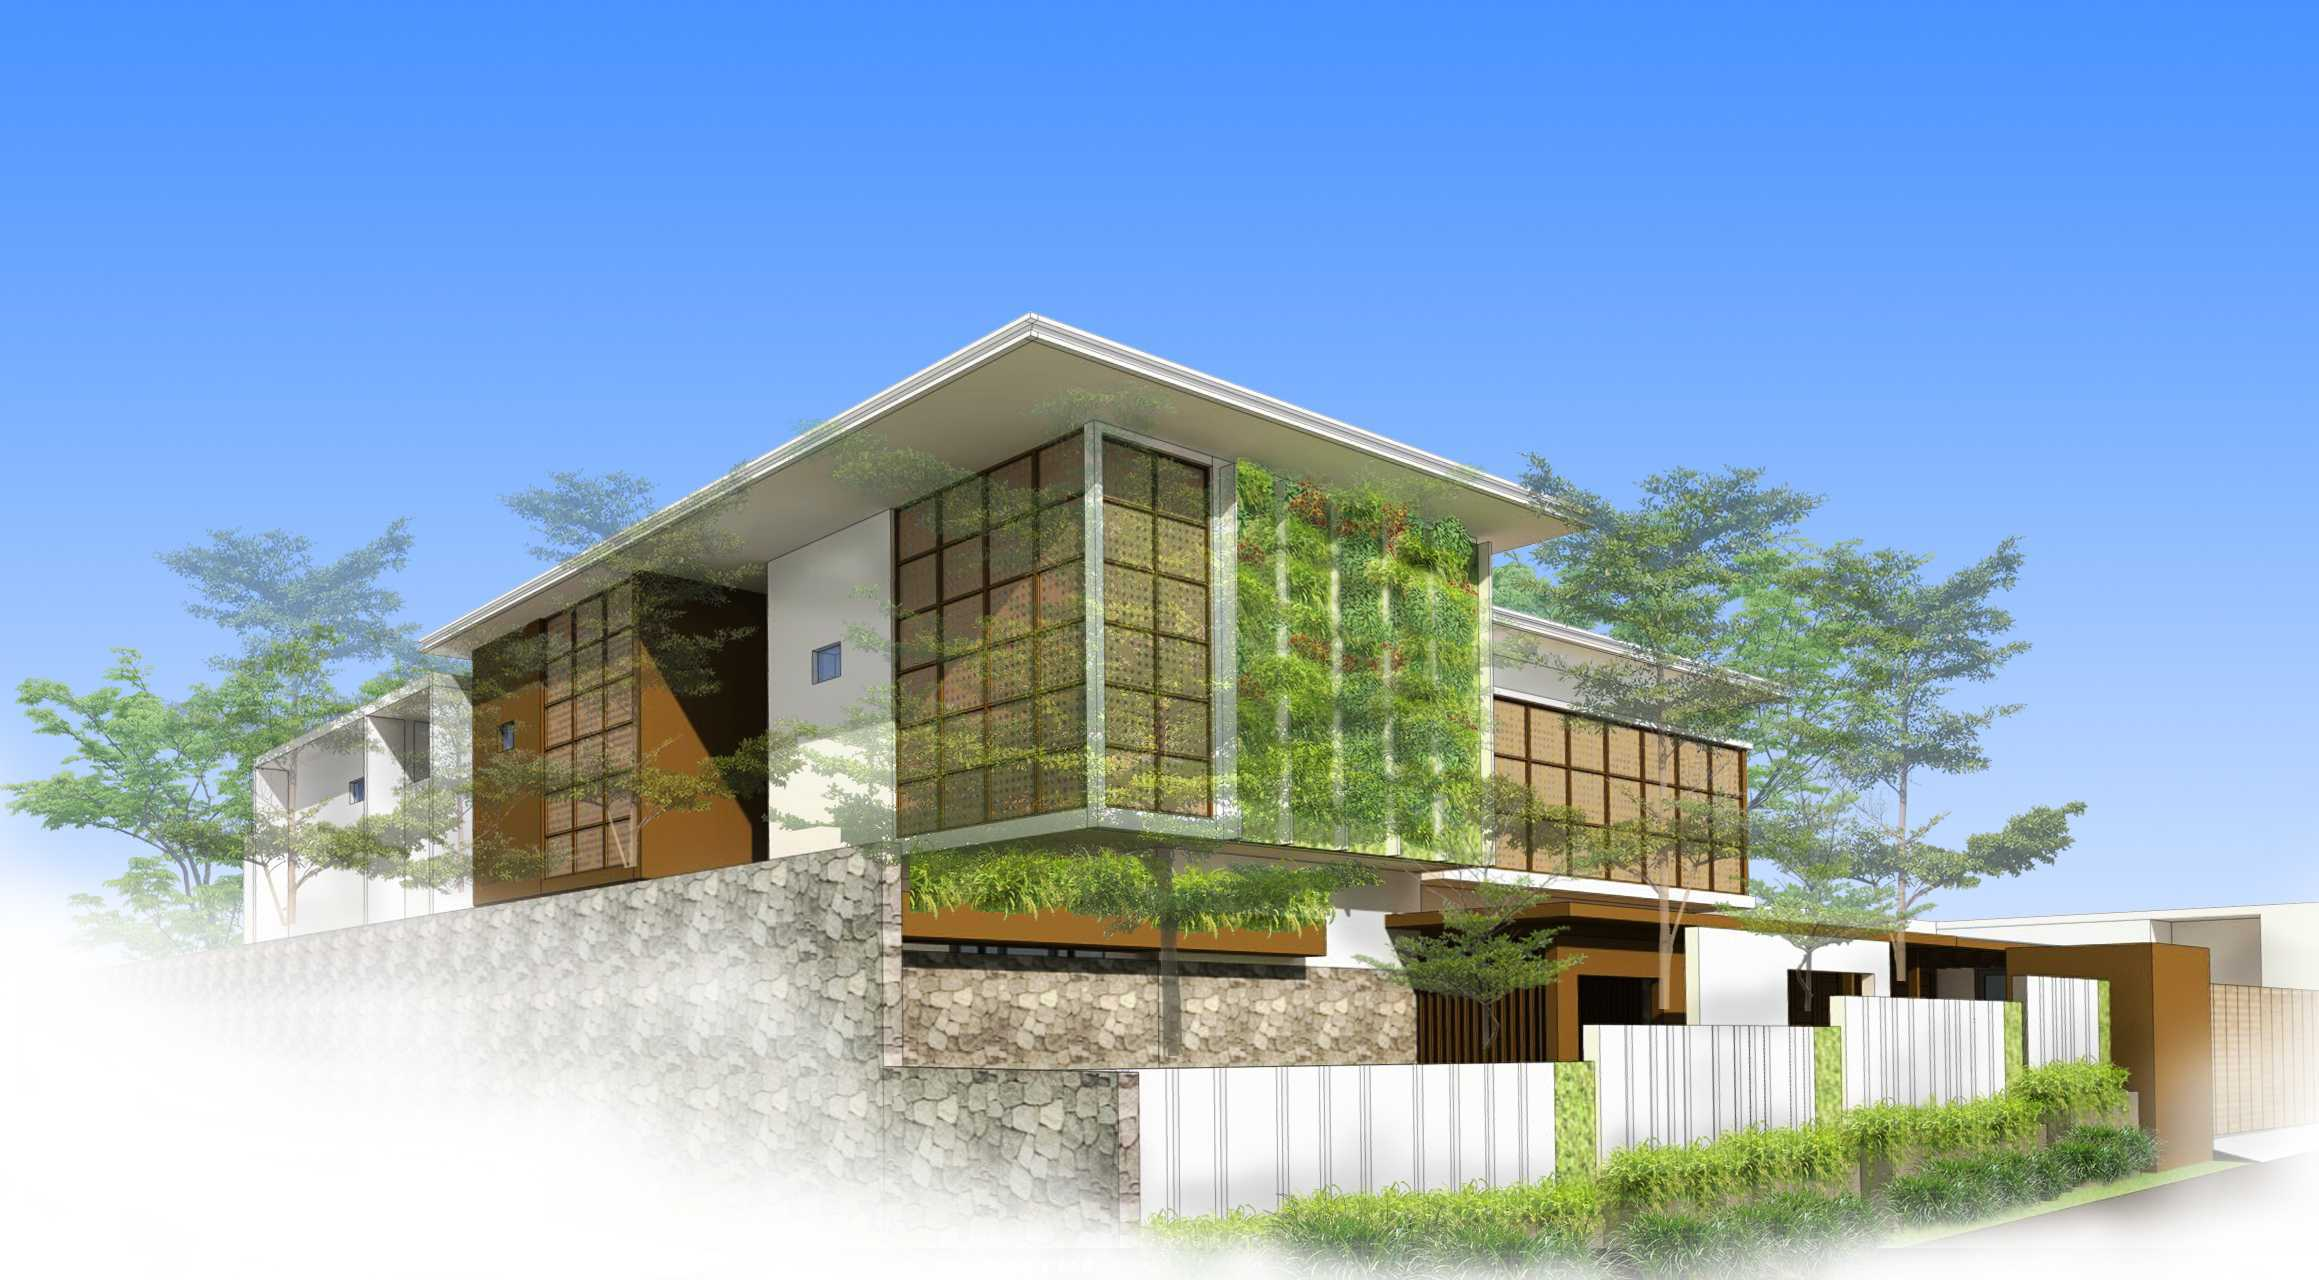 Rerupa Architecture Mr. Df House Kupang, Nusa Tenggara Timur, Indonesia Kupang, Nusa Tenggara Timur, Indonesia Front View   28918